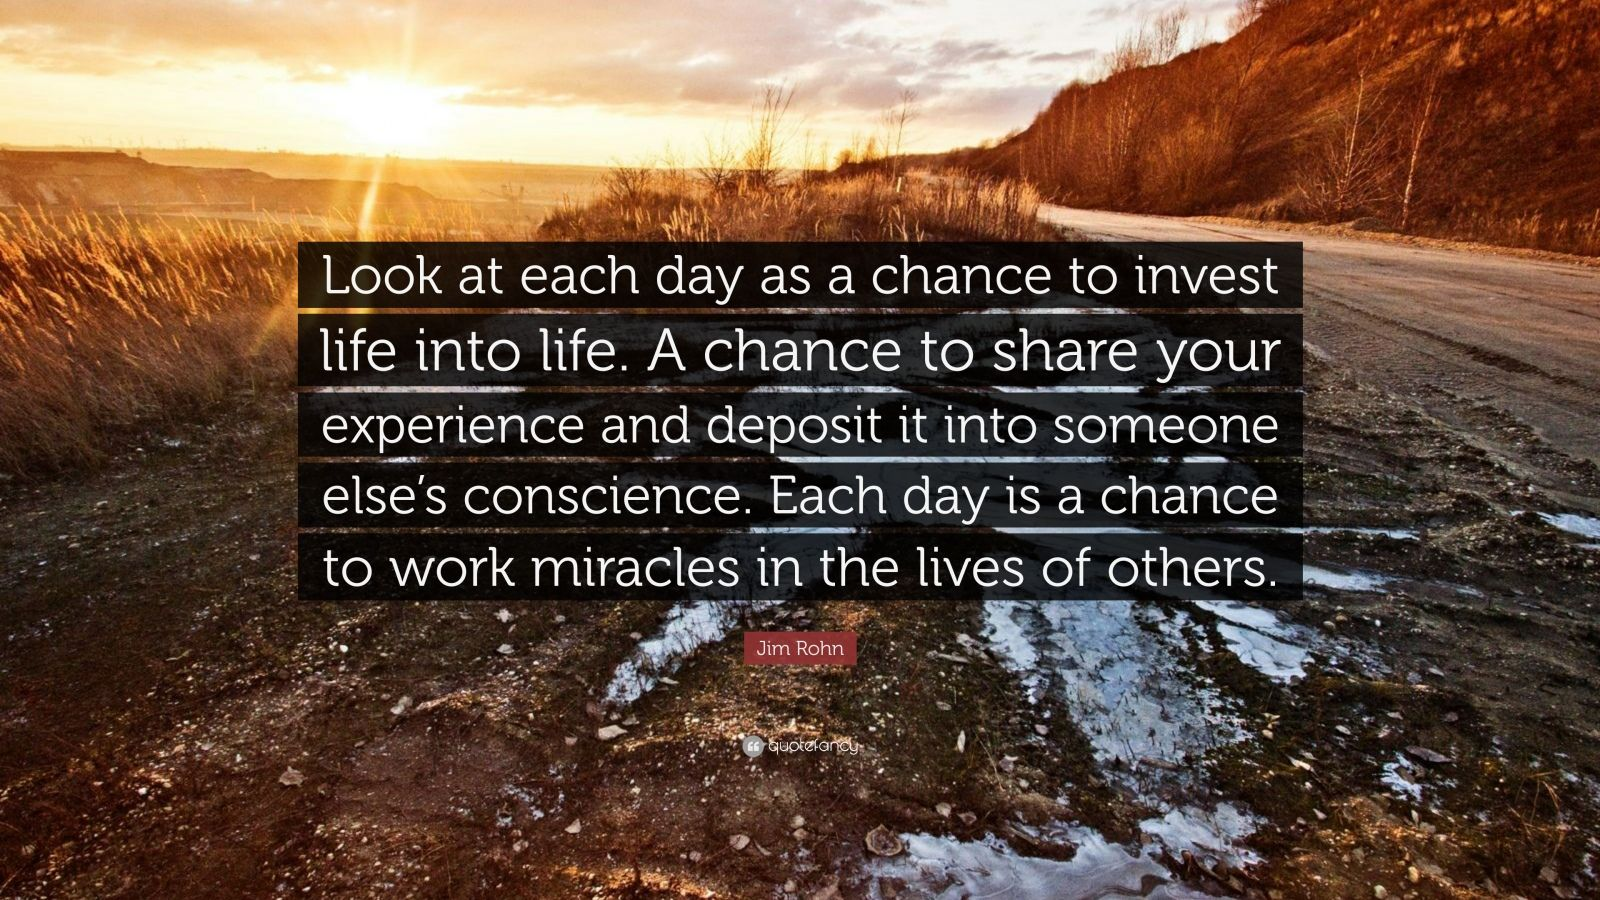 """Jim Rohn Quote: """"Look at each day as a chance to invest life into life. A chance to share your experience and deposit it into someone else's conscience. Each day is a chance to work miracles in the lives of others."""""""